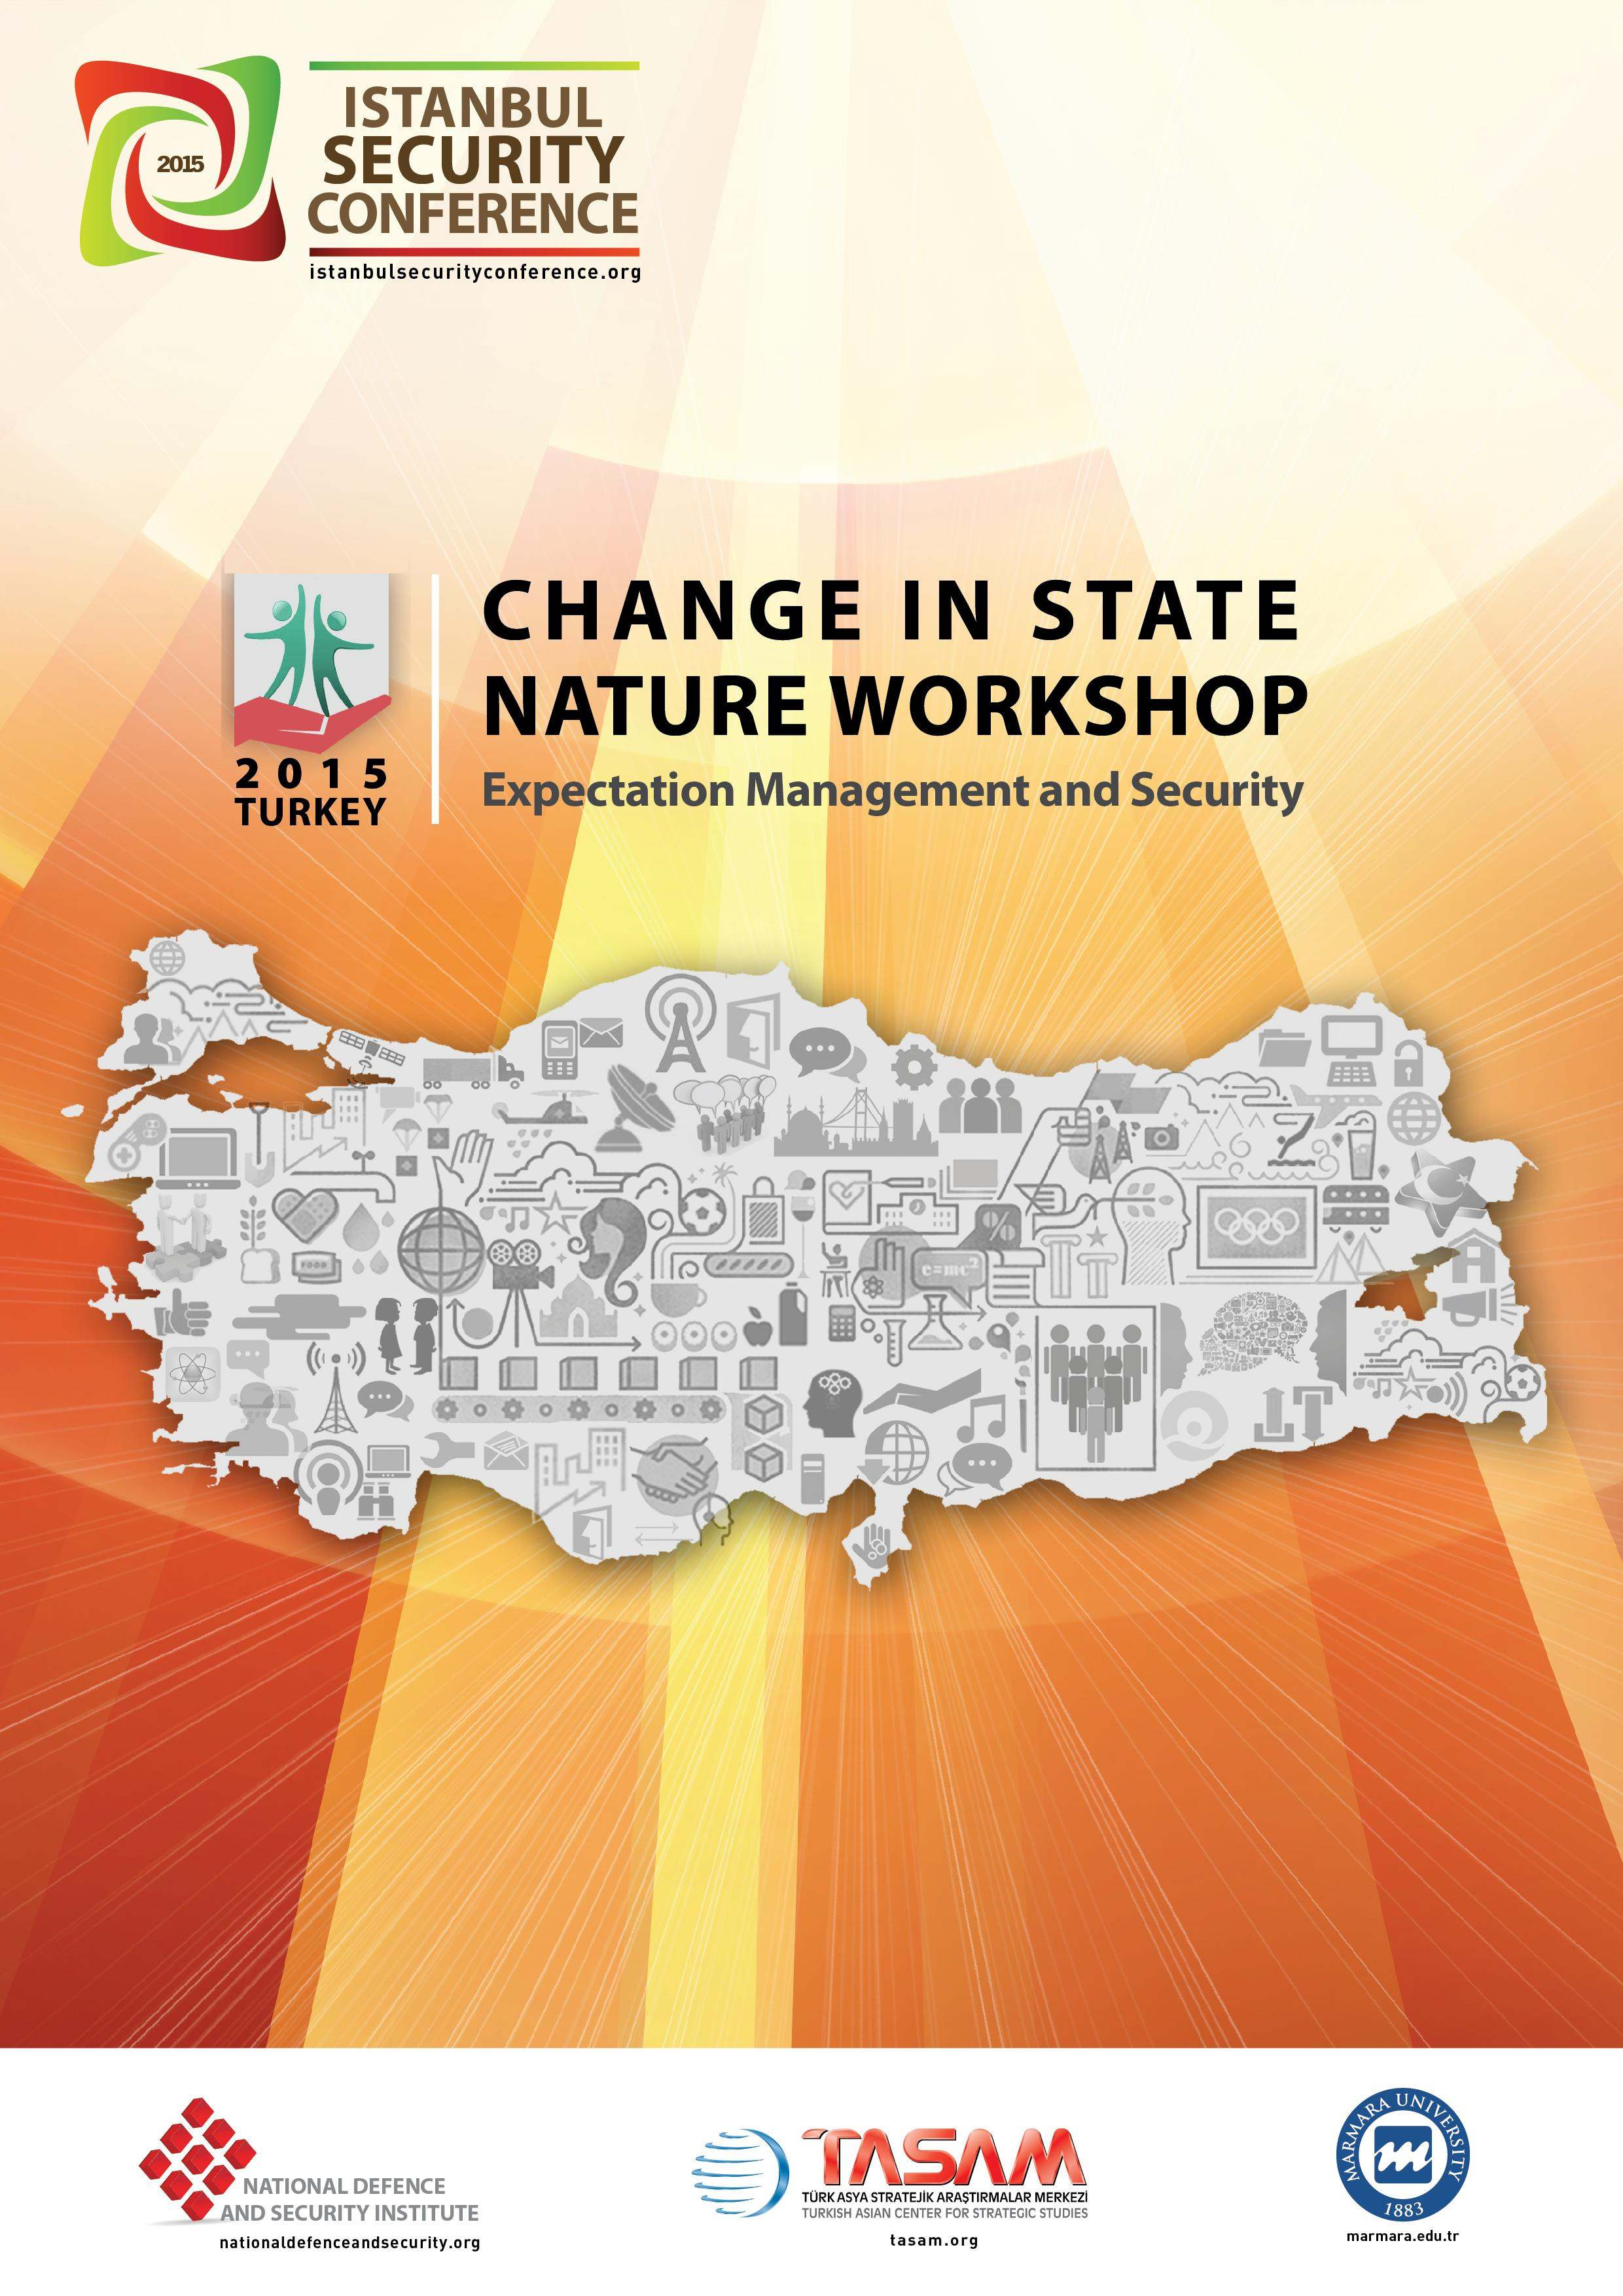 Change in State Nature Workshop | Istanbul Security Conference 2015